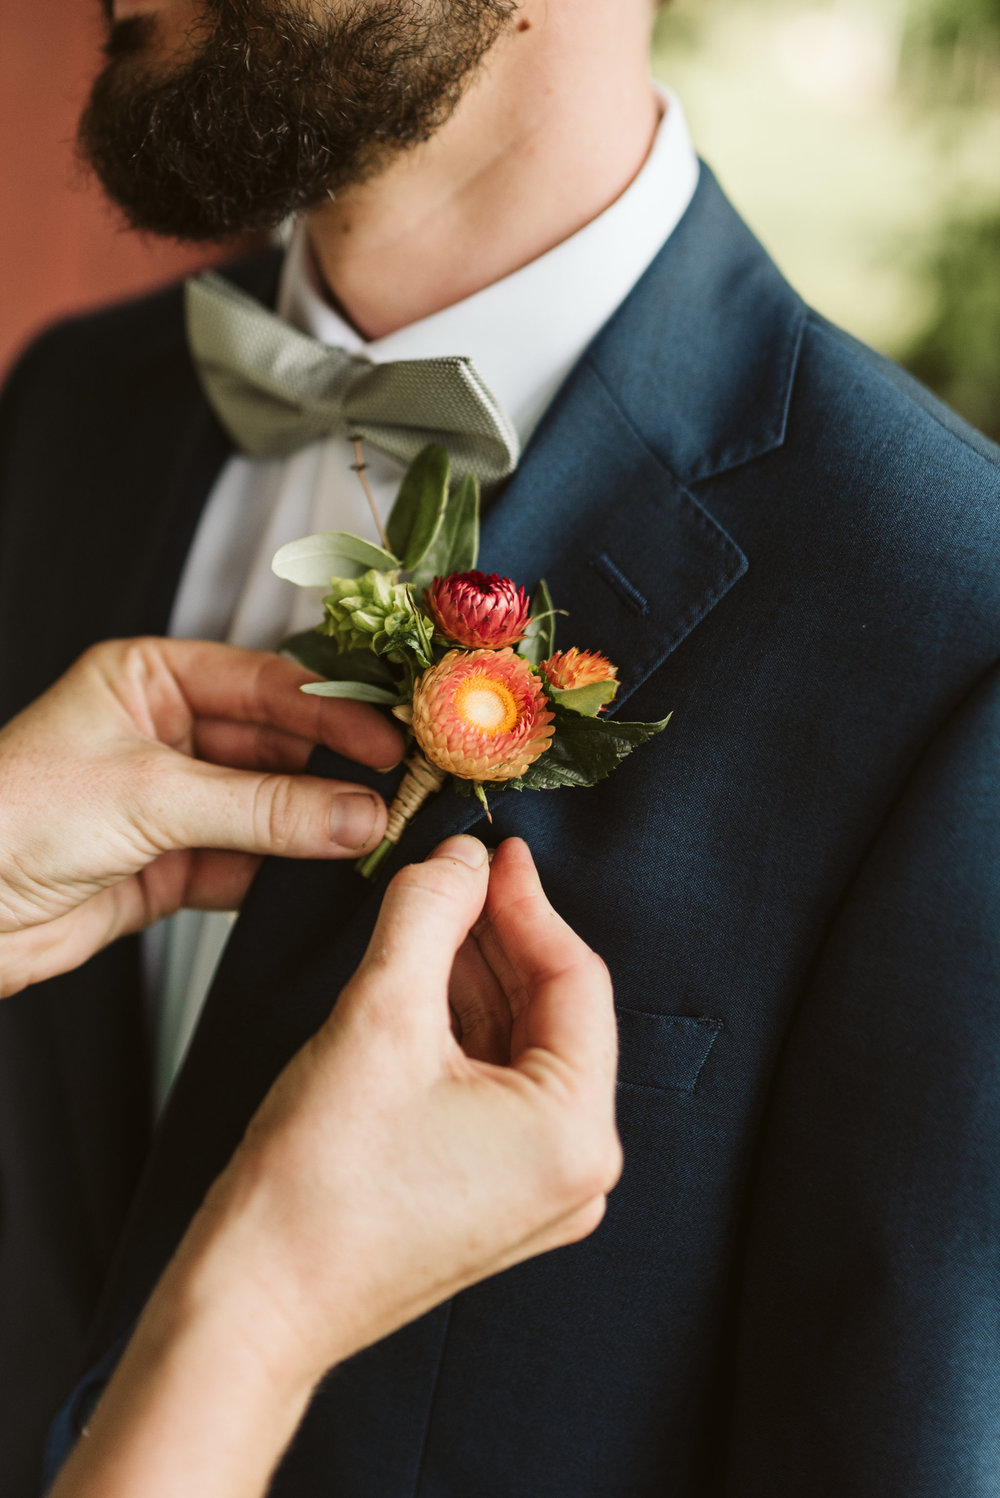 Rocklands Farm, Maryland, Intimate Wedding, Baltimore Wedding Photographer, Sungold Flower Co, Rustic, Romantic, Barn Wedding, Groom Getting Ready, Boutonniere